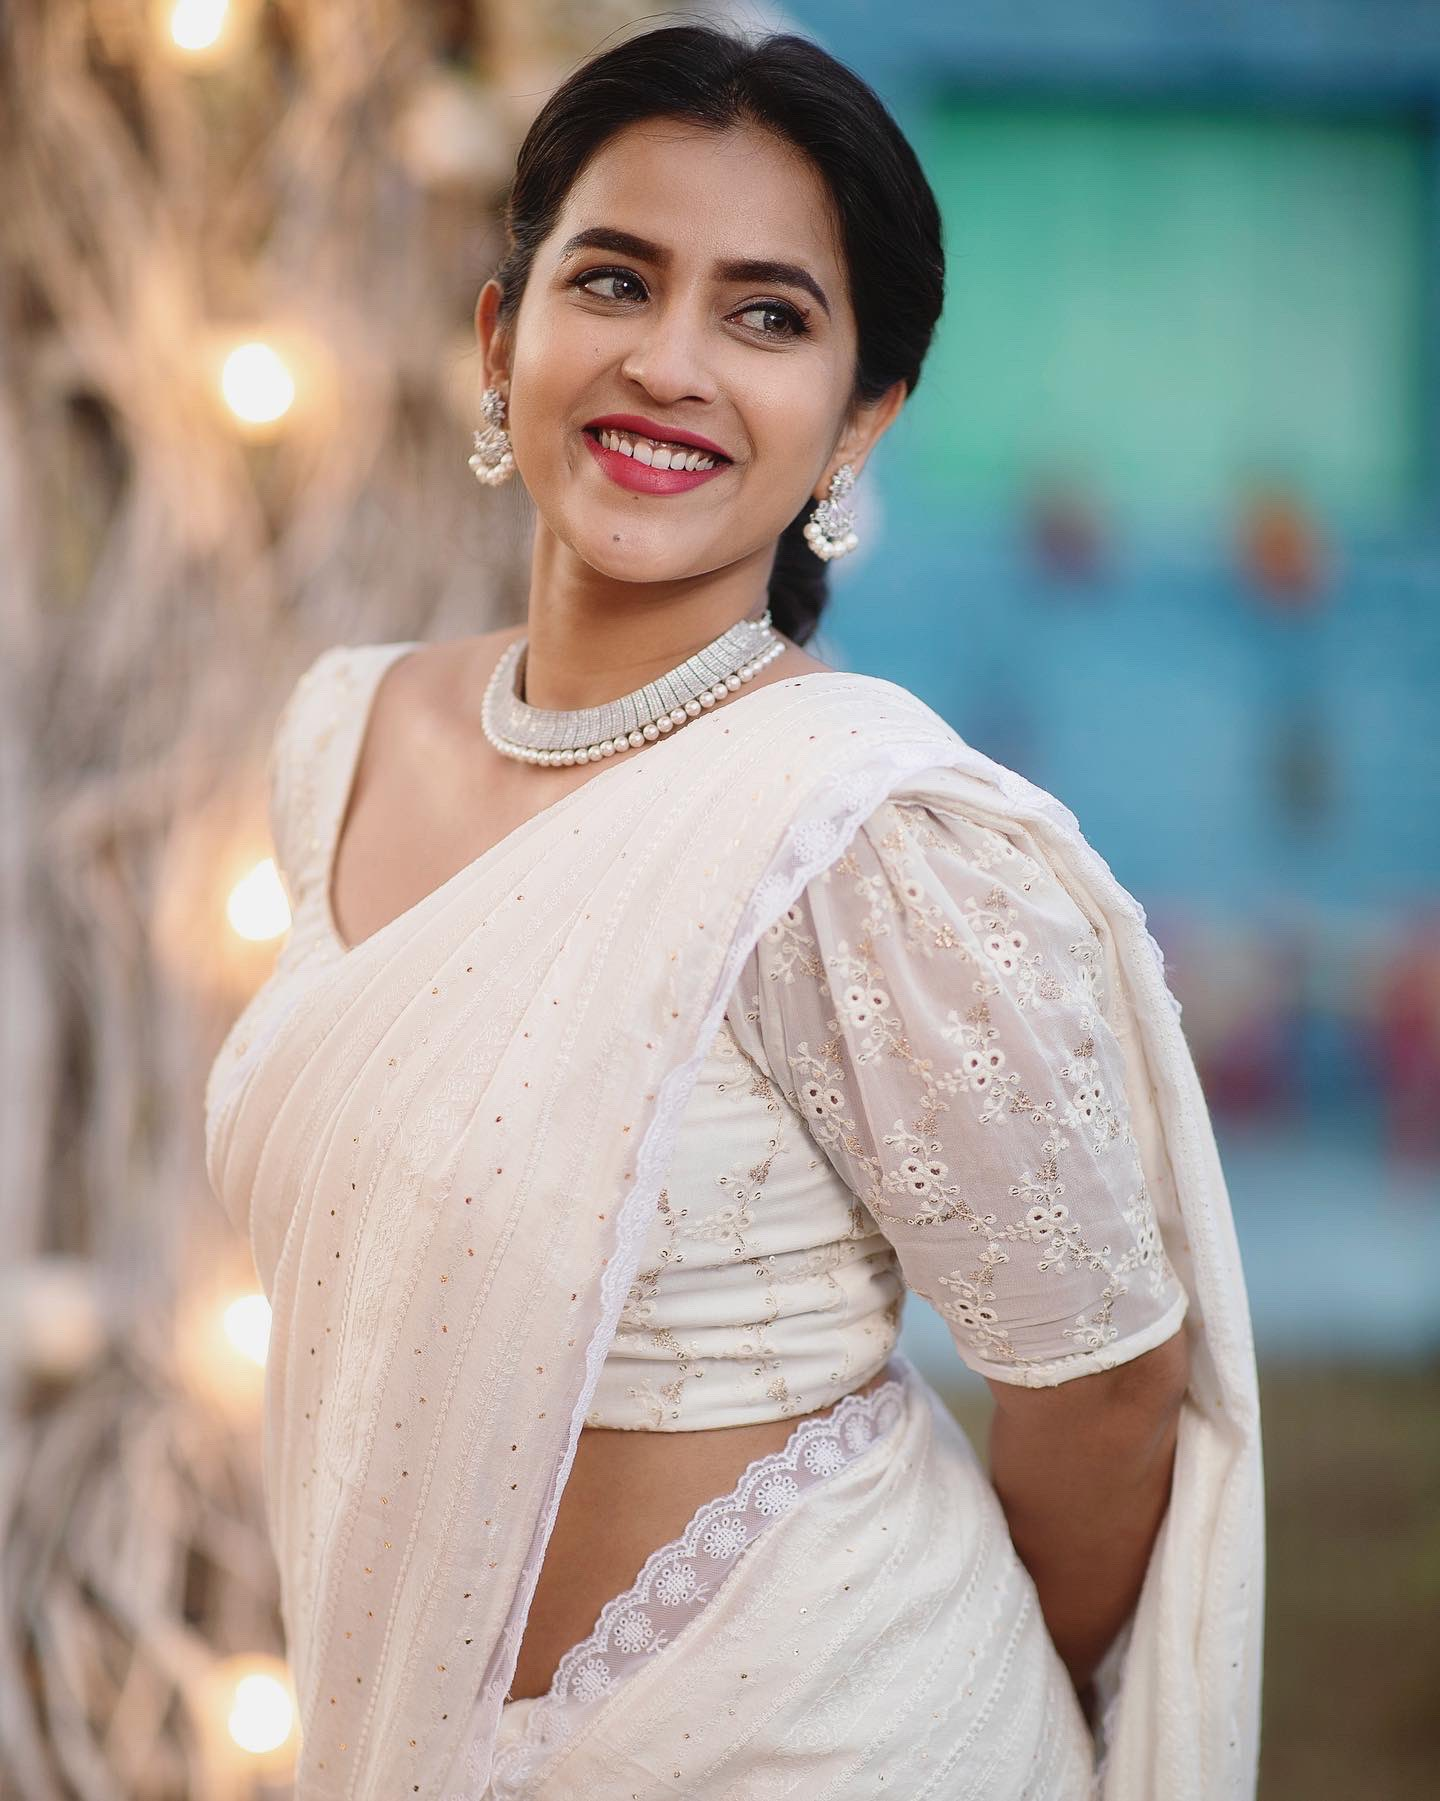 Tollywood Actress Komalee Prasad Hot Images, Sexy photos and movie news